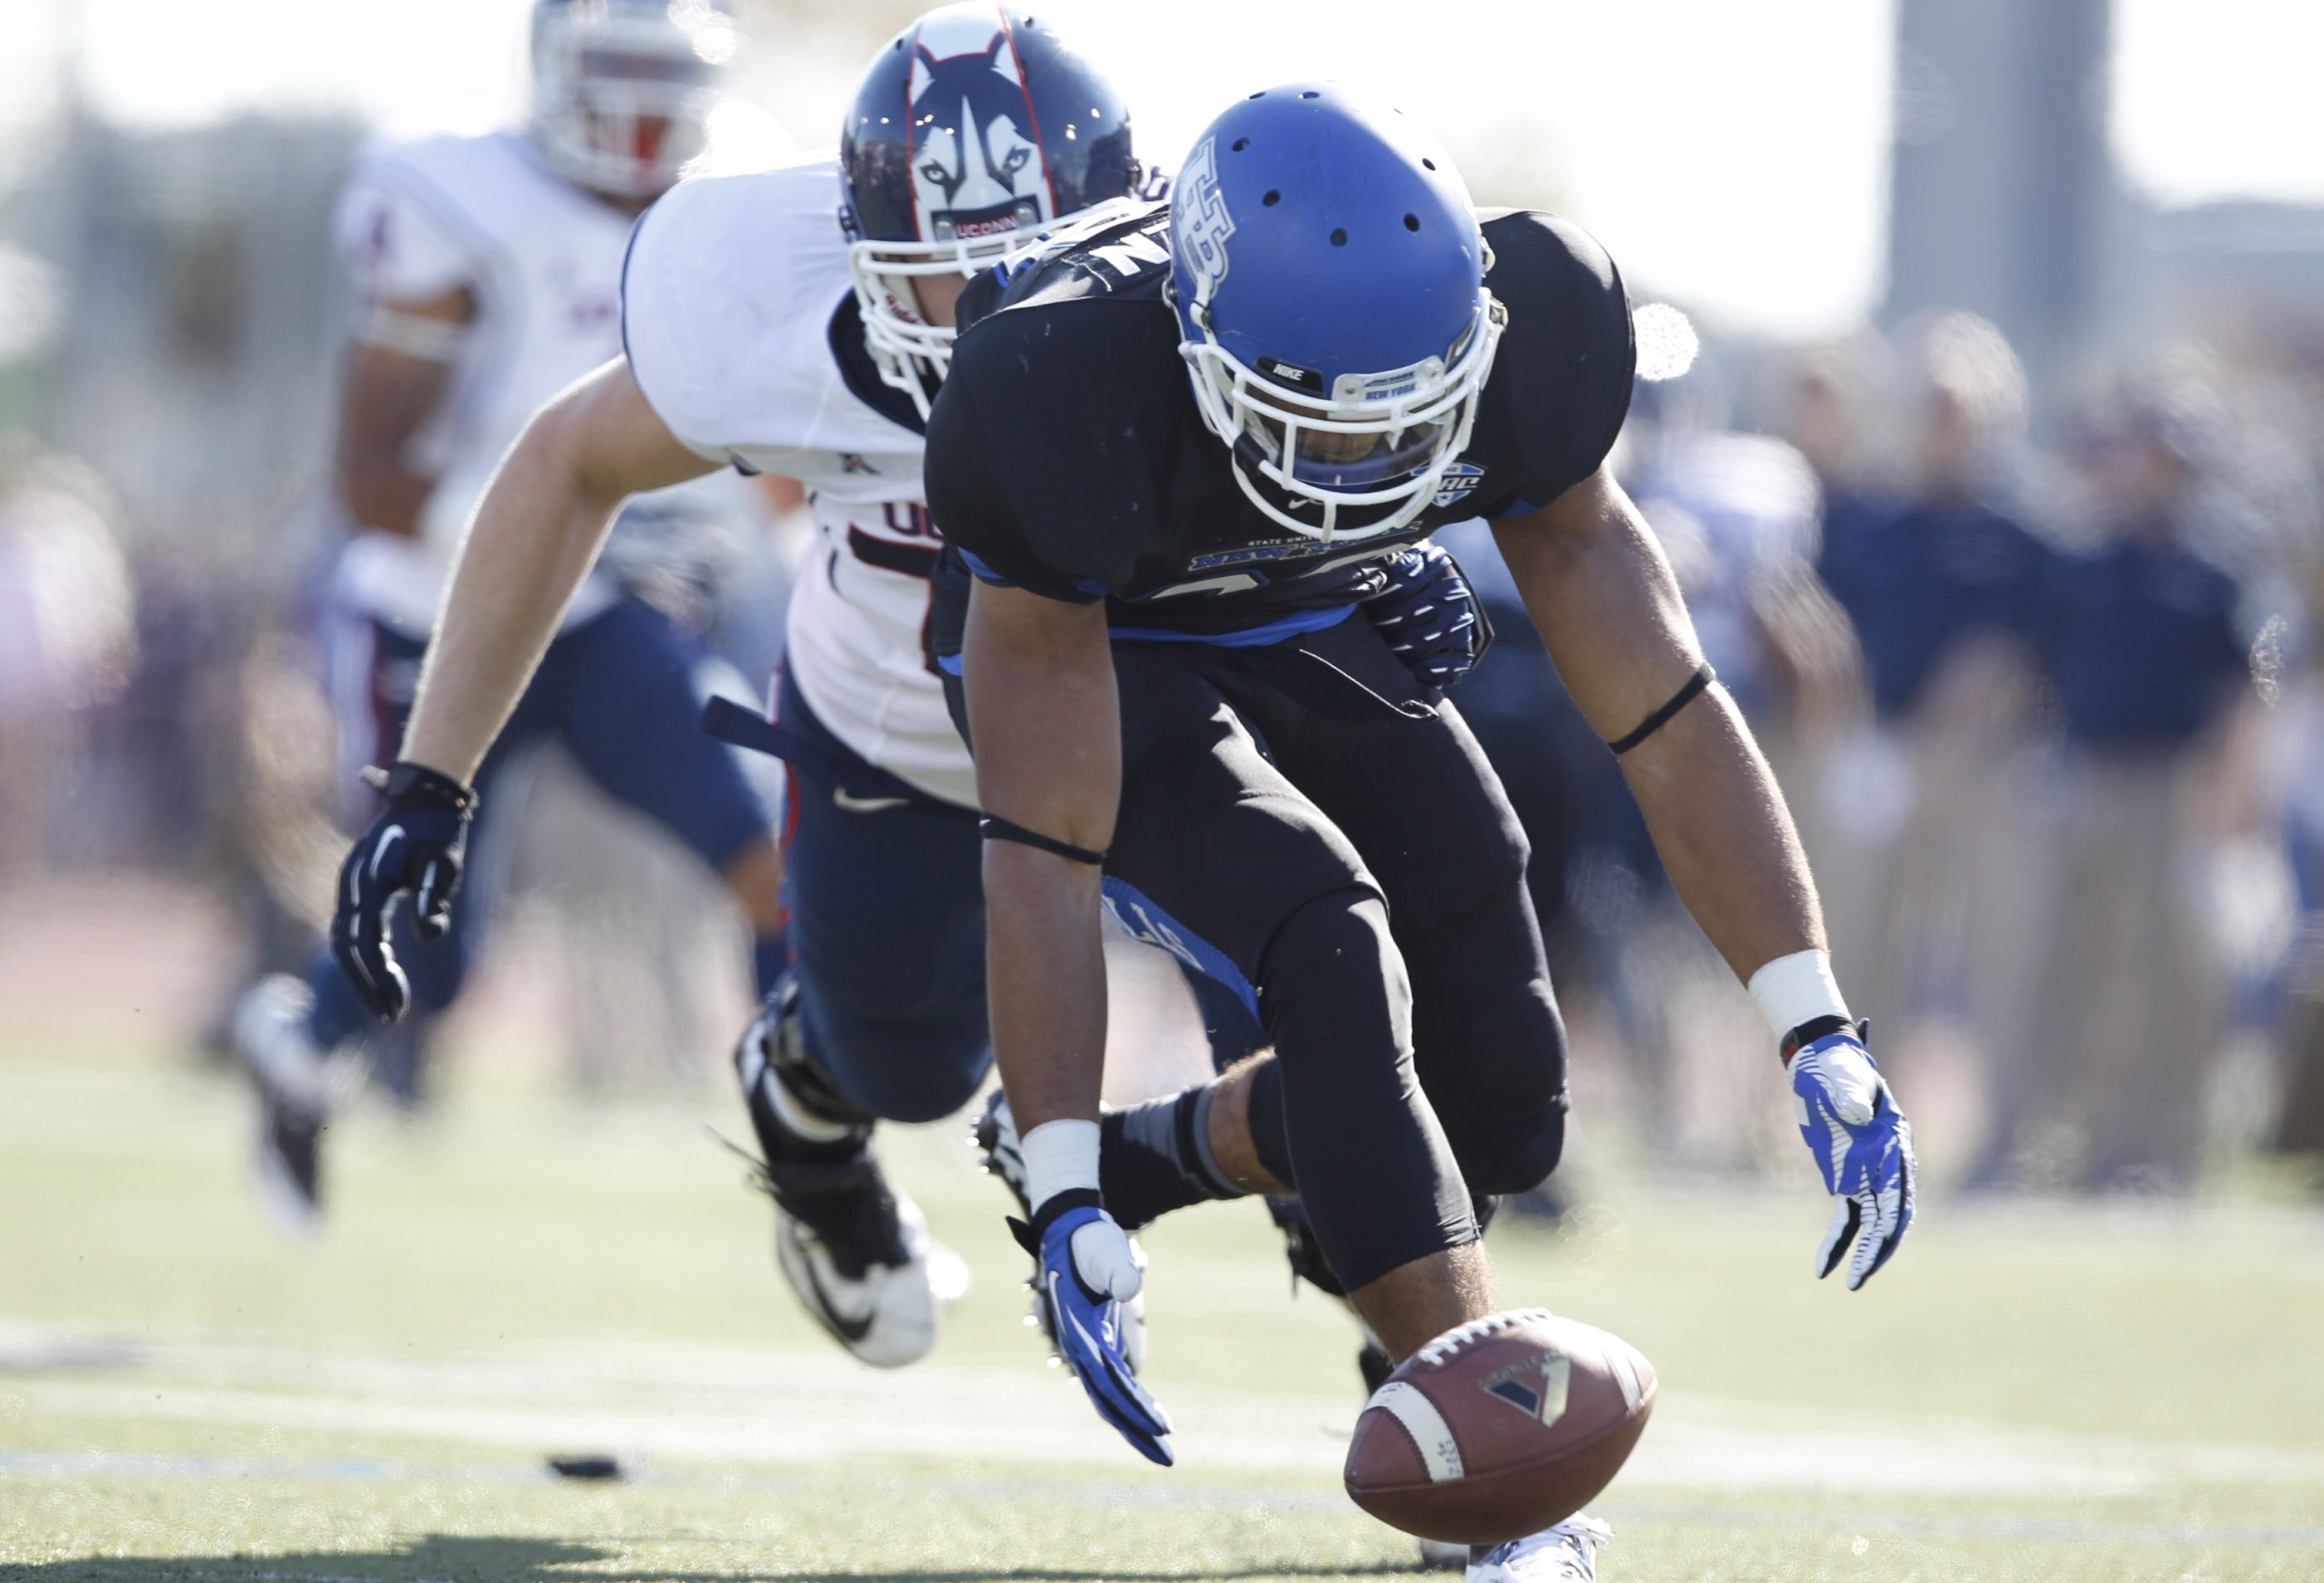 UB's Adam Redden scoops up a fumble in the first quarter against Connecticut.